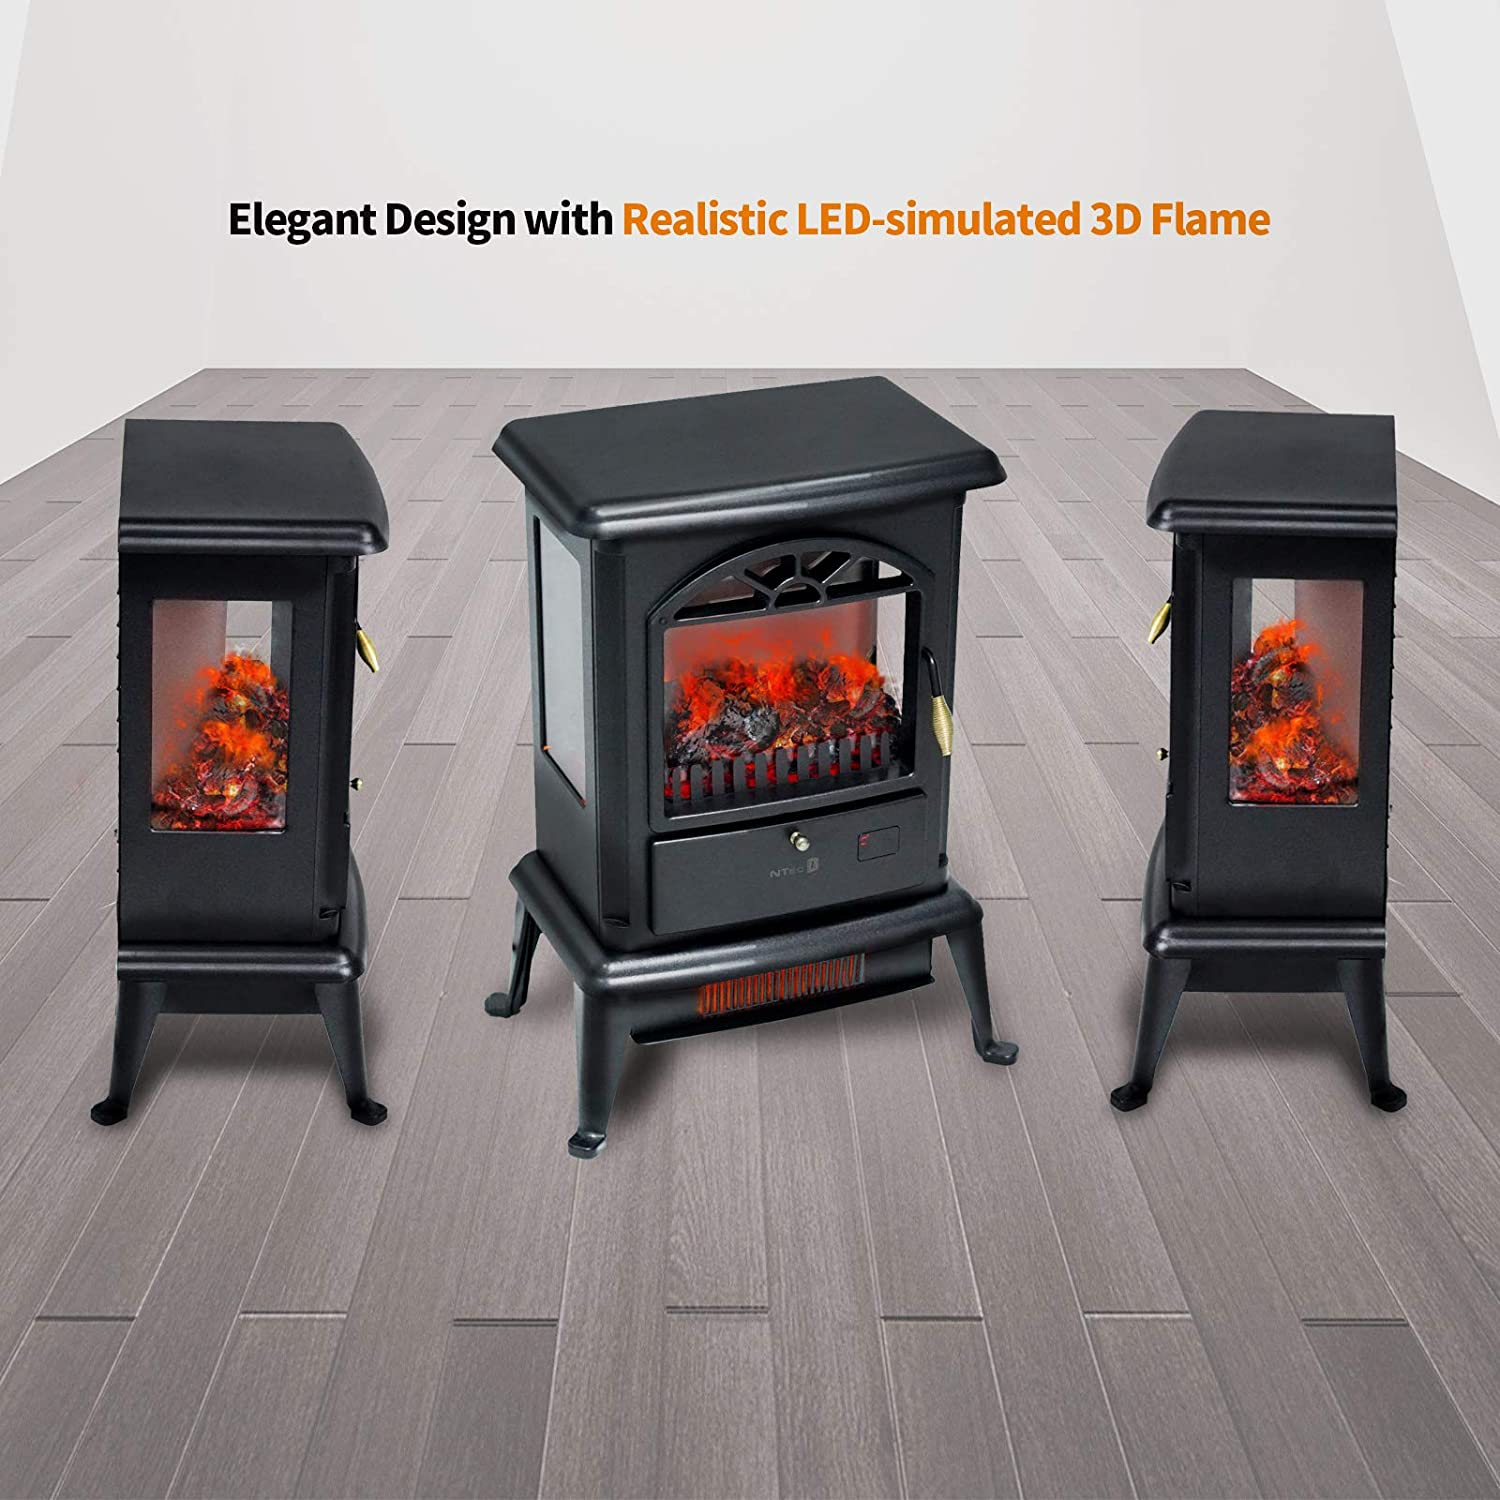 BEYOND BREEZE NTEC Electric Fireplace Stove,23 Inch 3D Infrared Fireplace Heater 1500W with LED Display,Remote Control,12 Hours Timer,Adjustable Brightness,Overheat and Tip-Over Protection